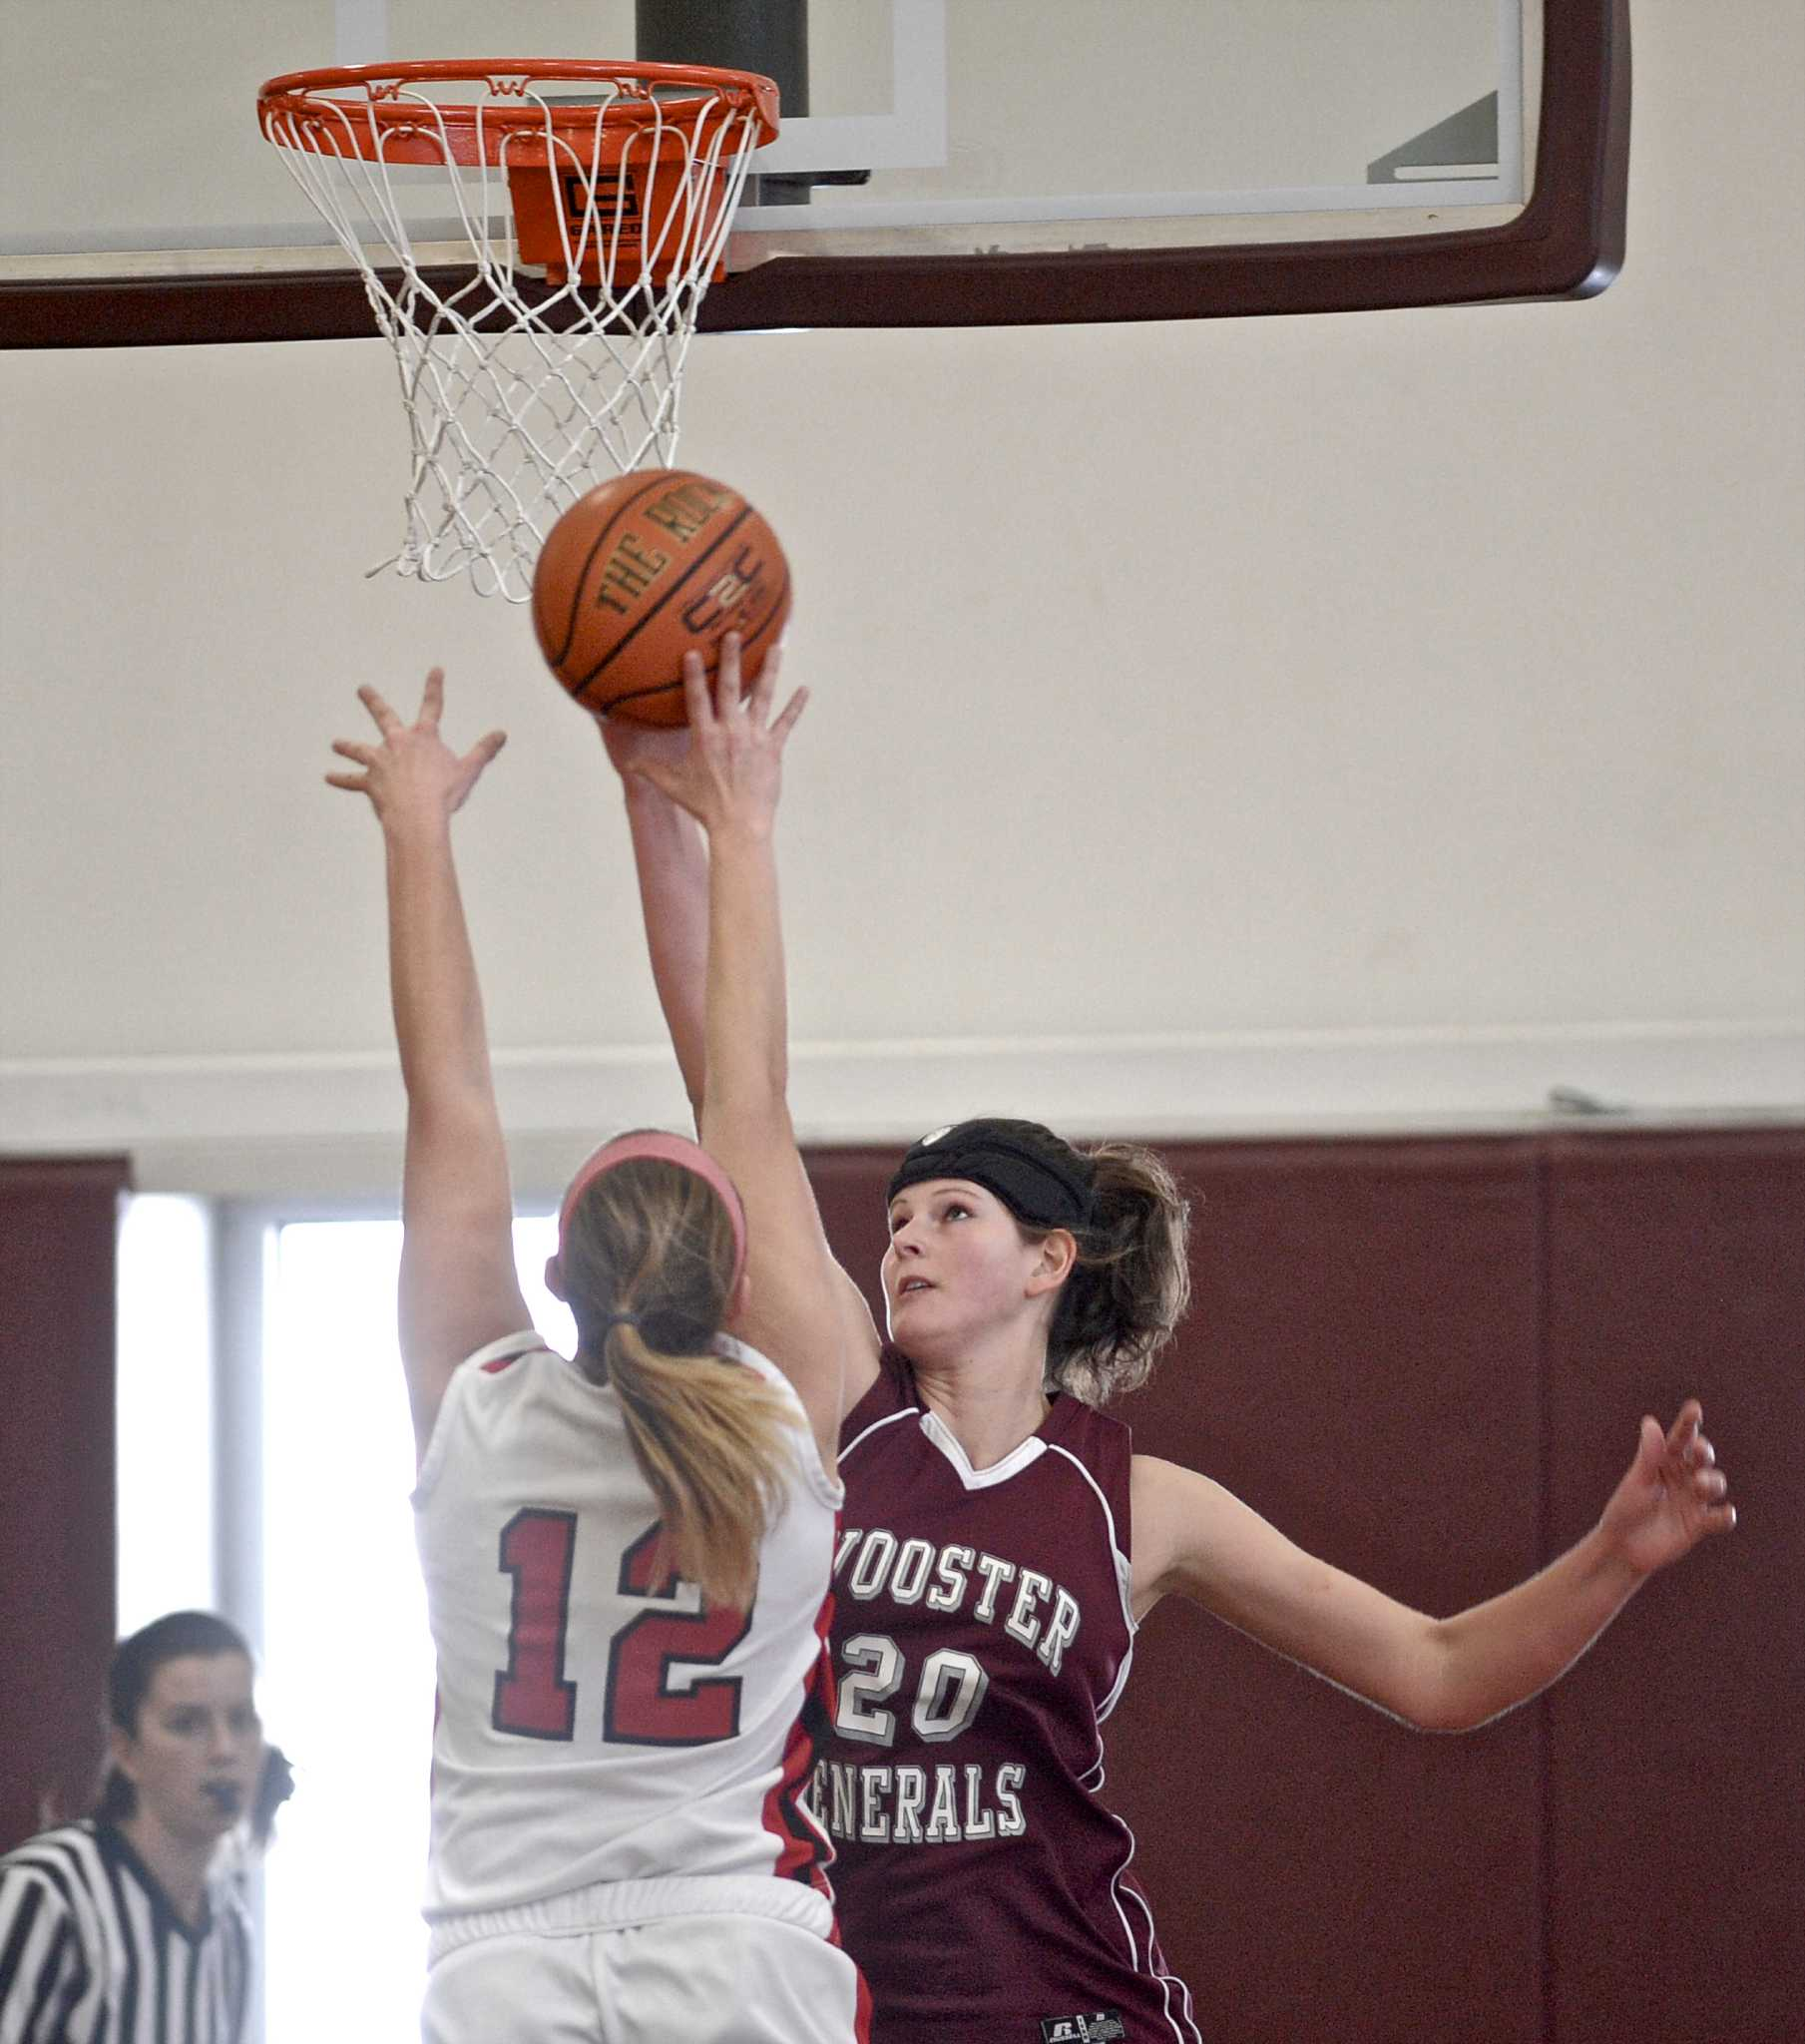 Wooster Girls Basketball Team Claims Spot In New England